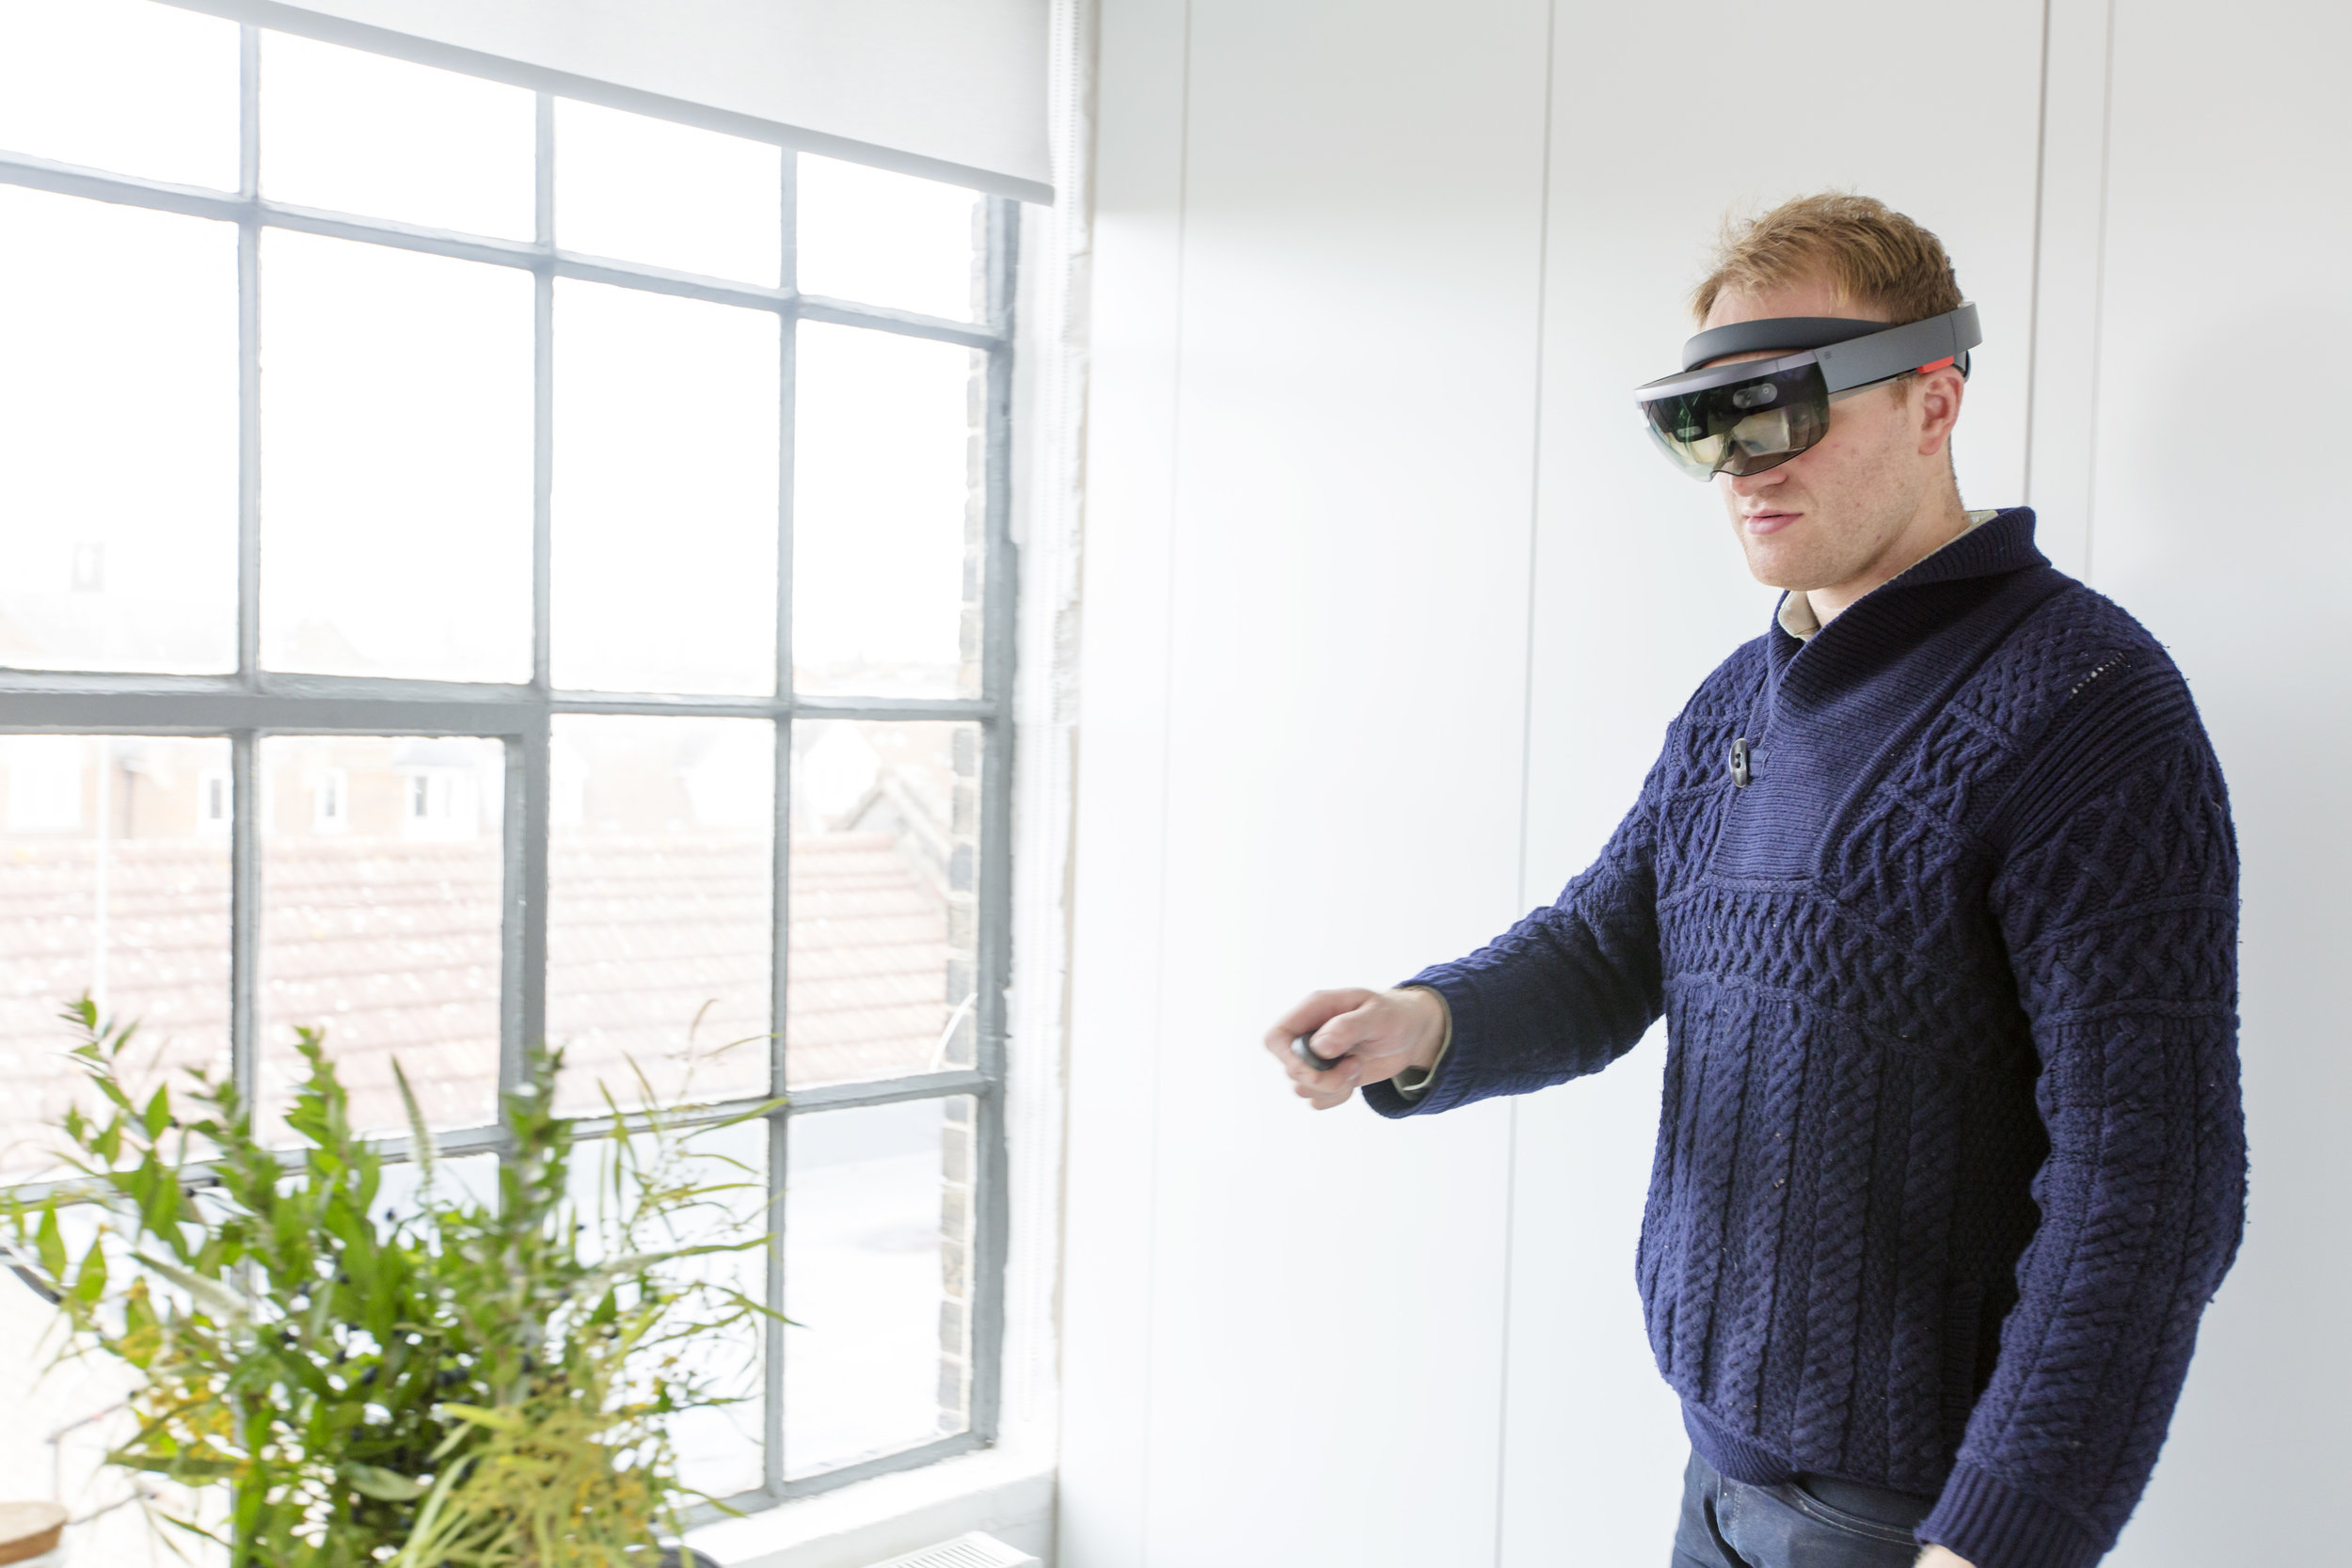 east-london-architect-hololens-3.jpg